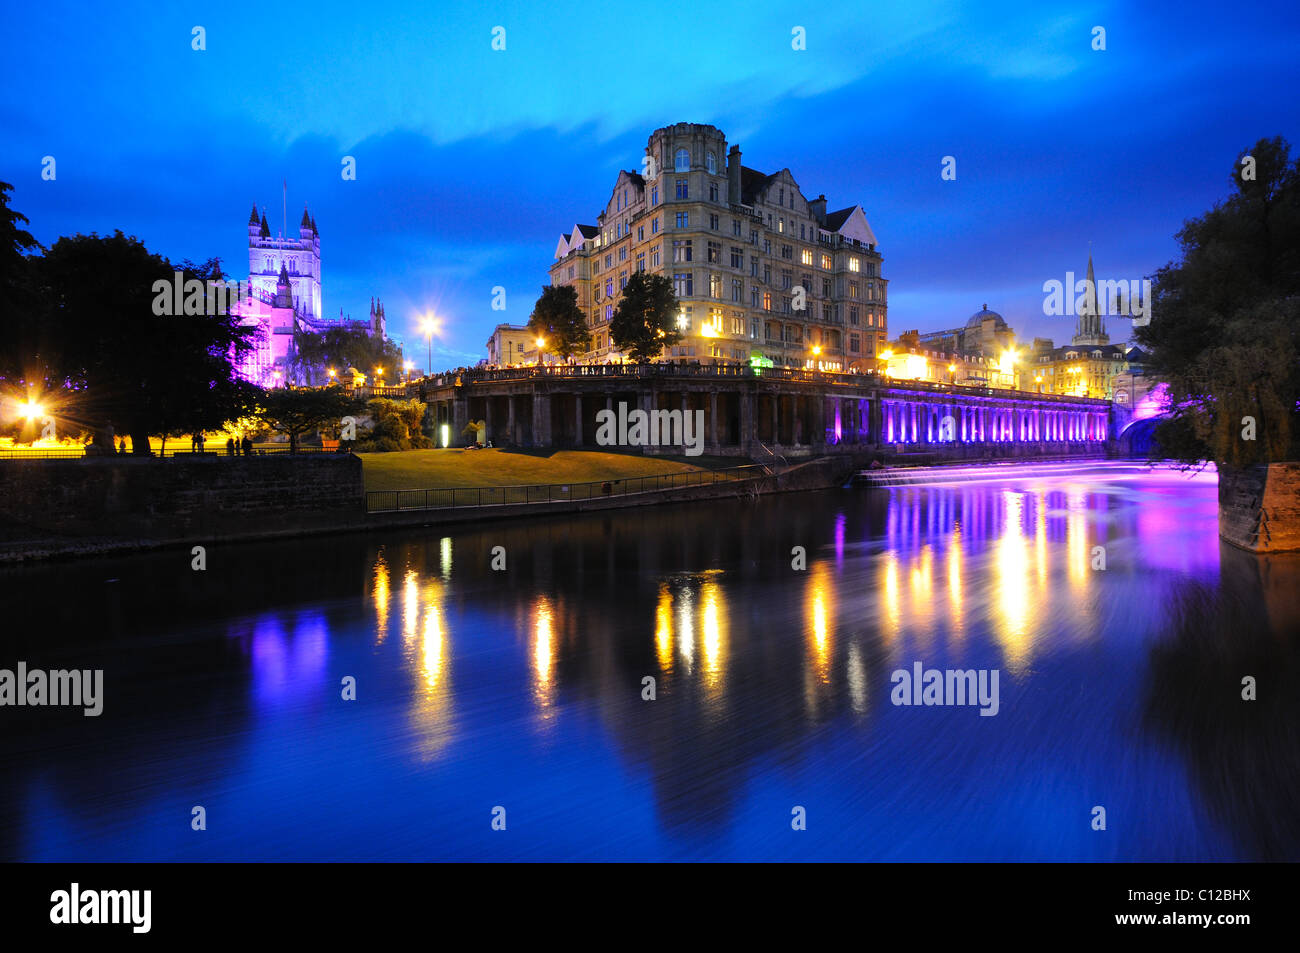 Bath's Abbey, Empire Hotel & Weir lit architecturally at twilight. - Stock Image